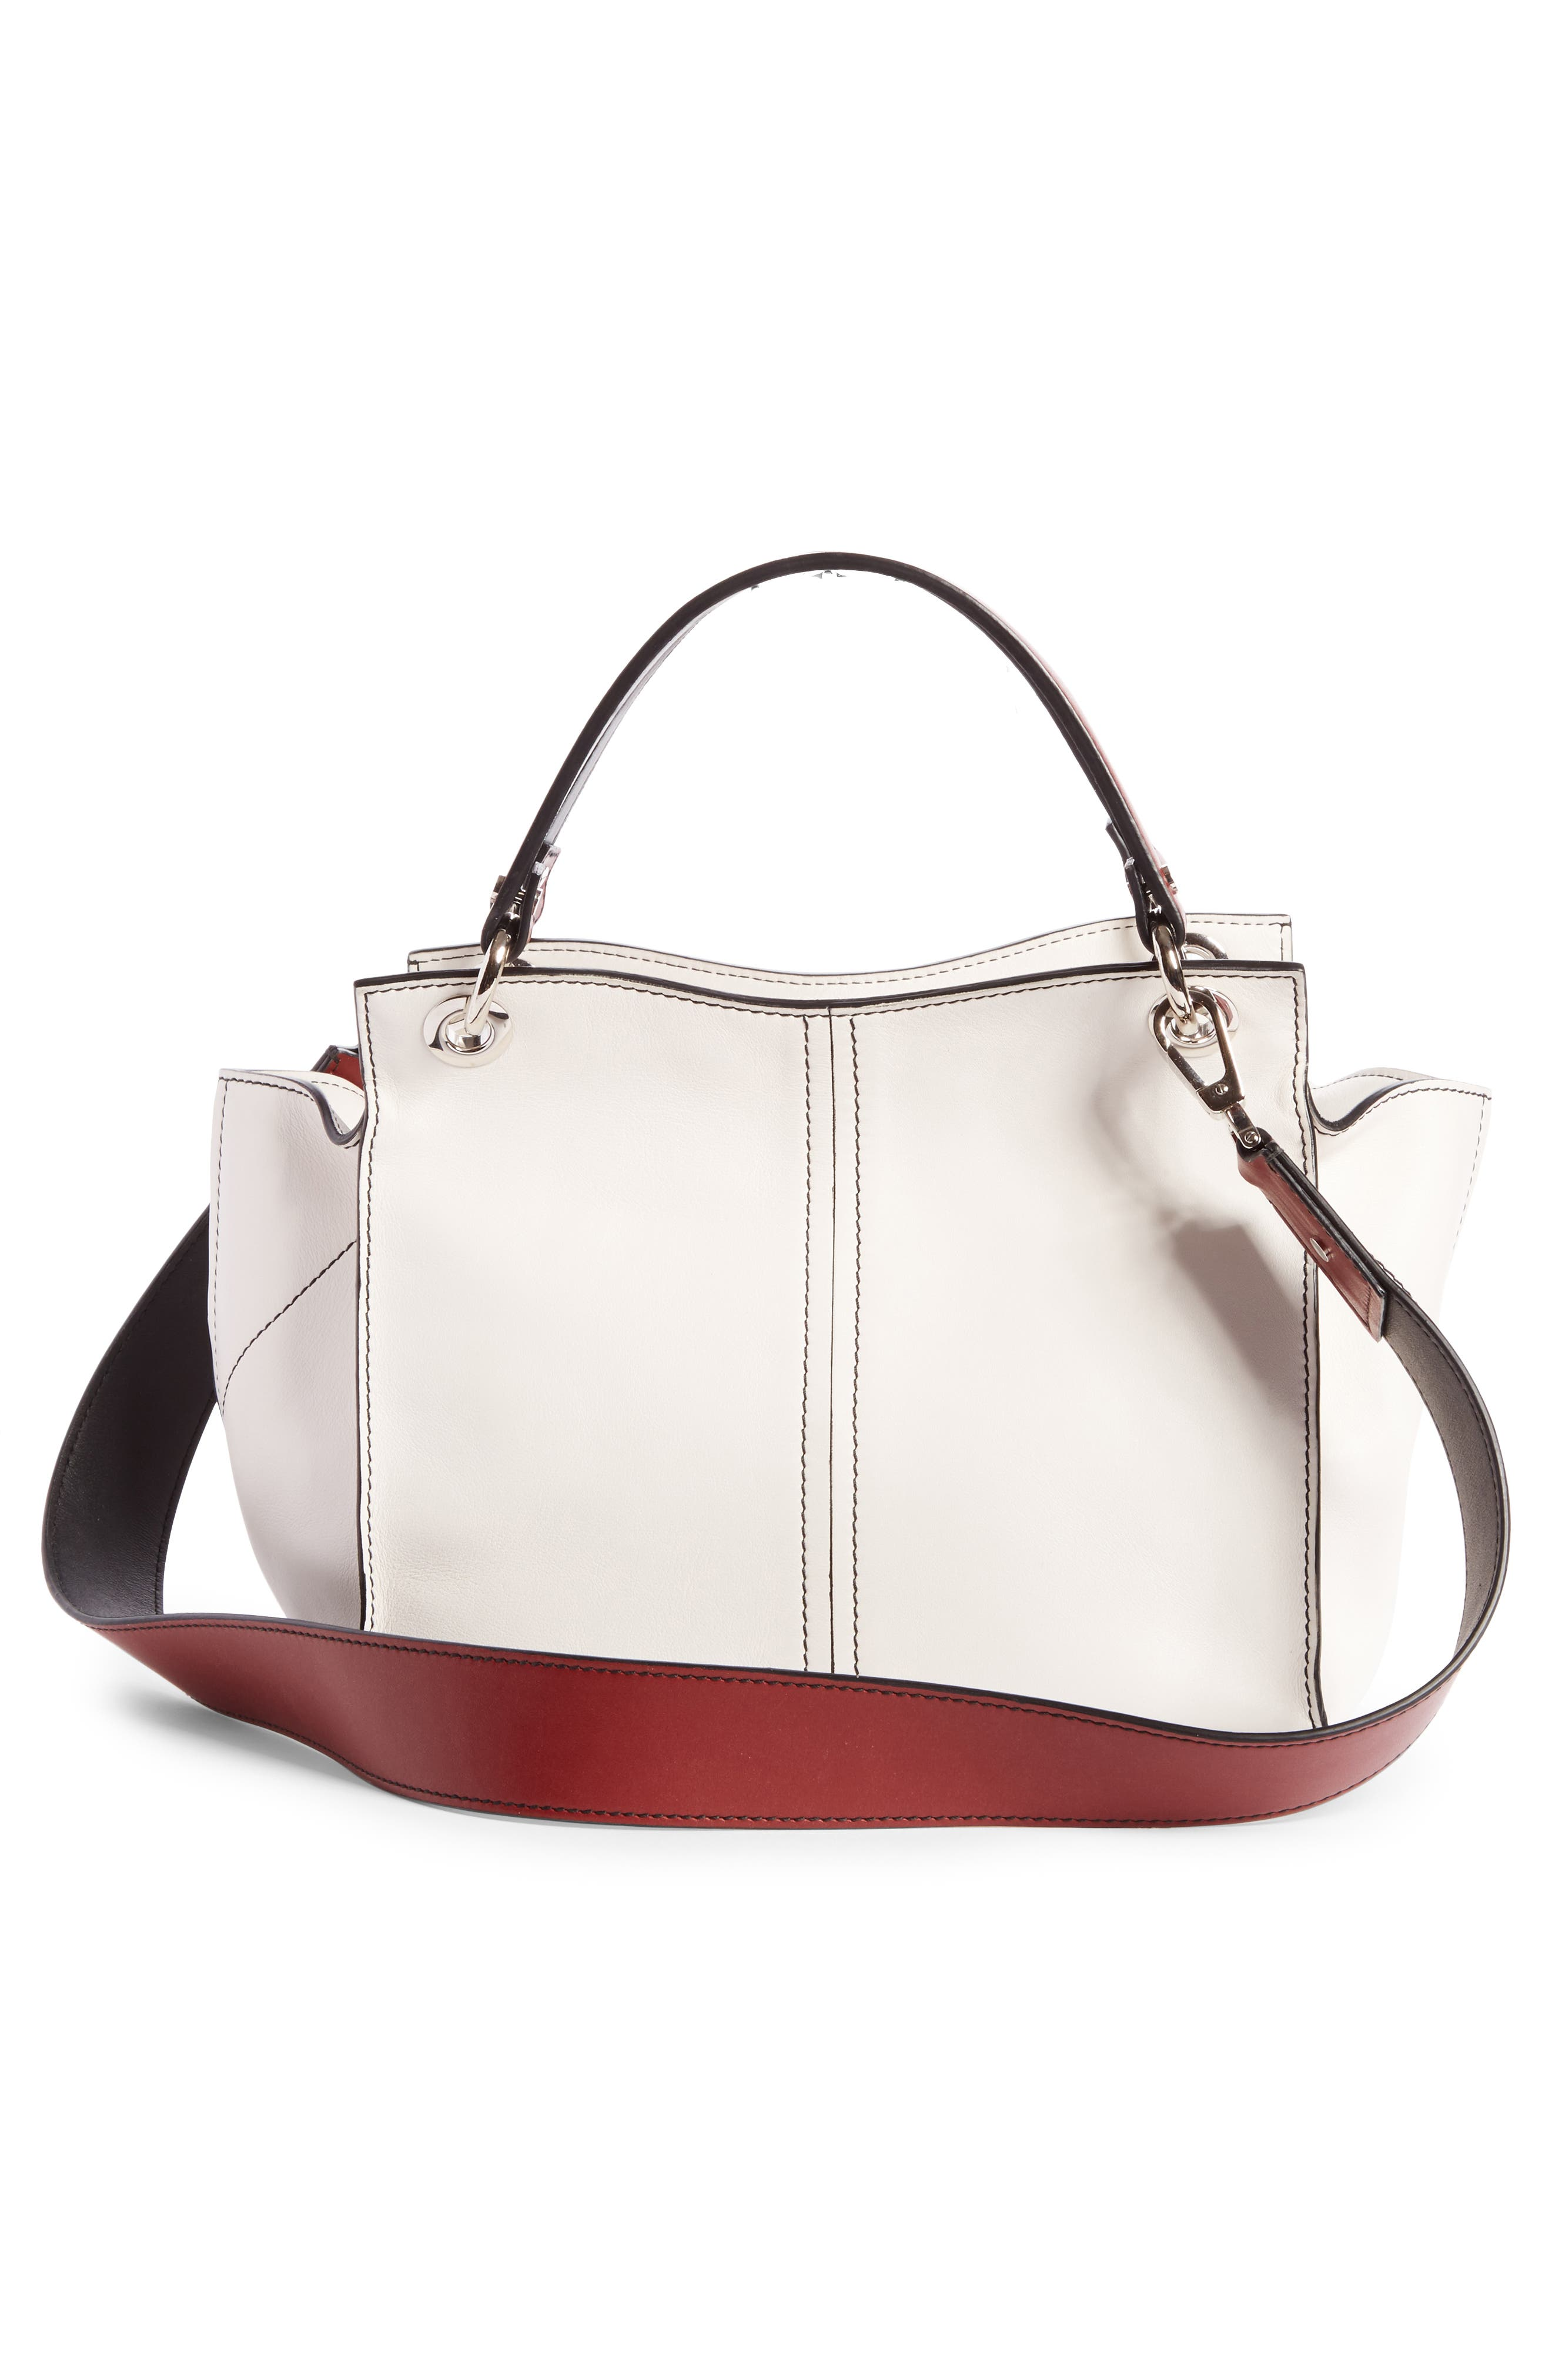 Curl Leather Shoulder Bag,                             Alternate thumbnail 3, color,